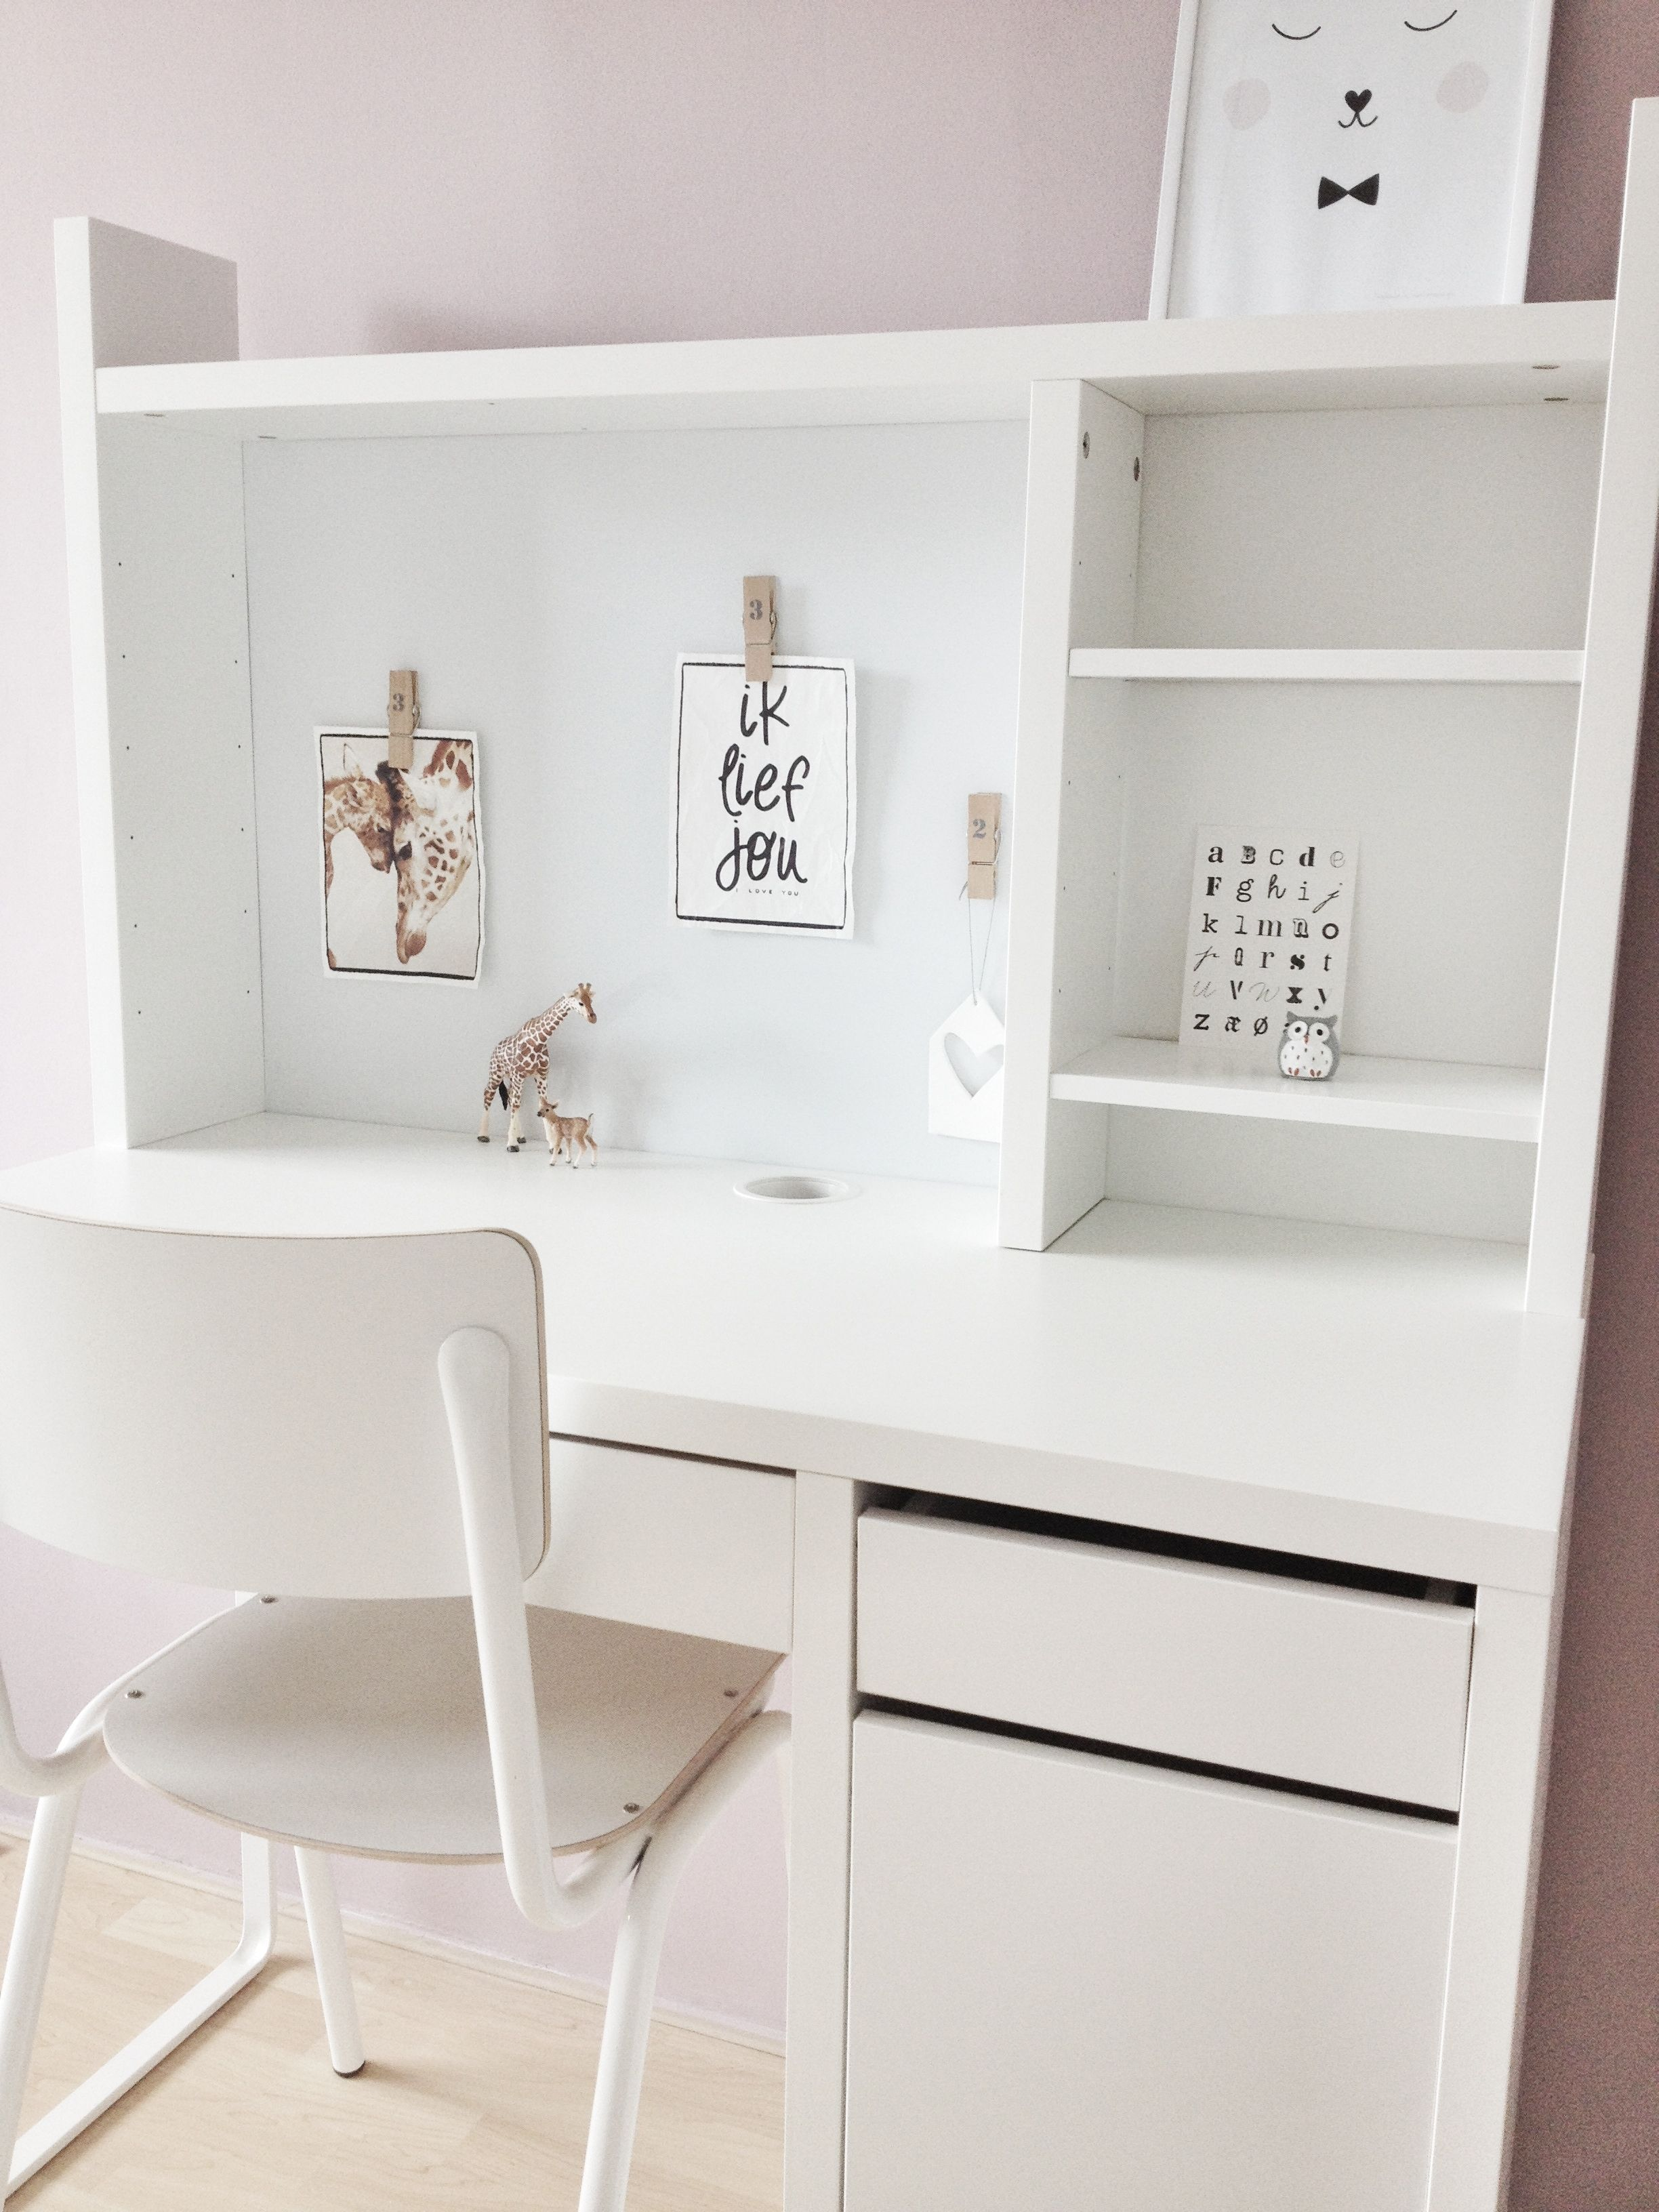 Decent Study Rooms: Girlsroom @our Home [harten8]